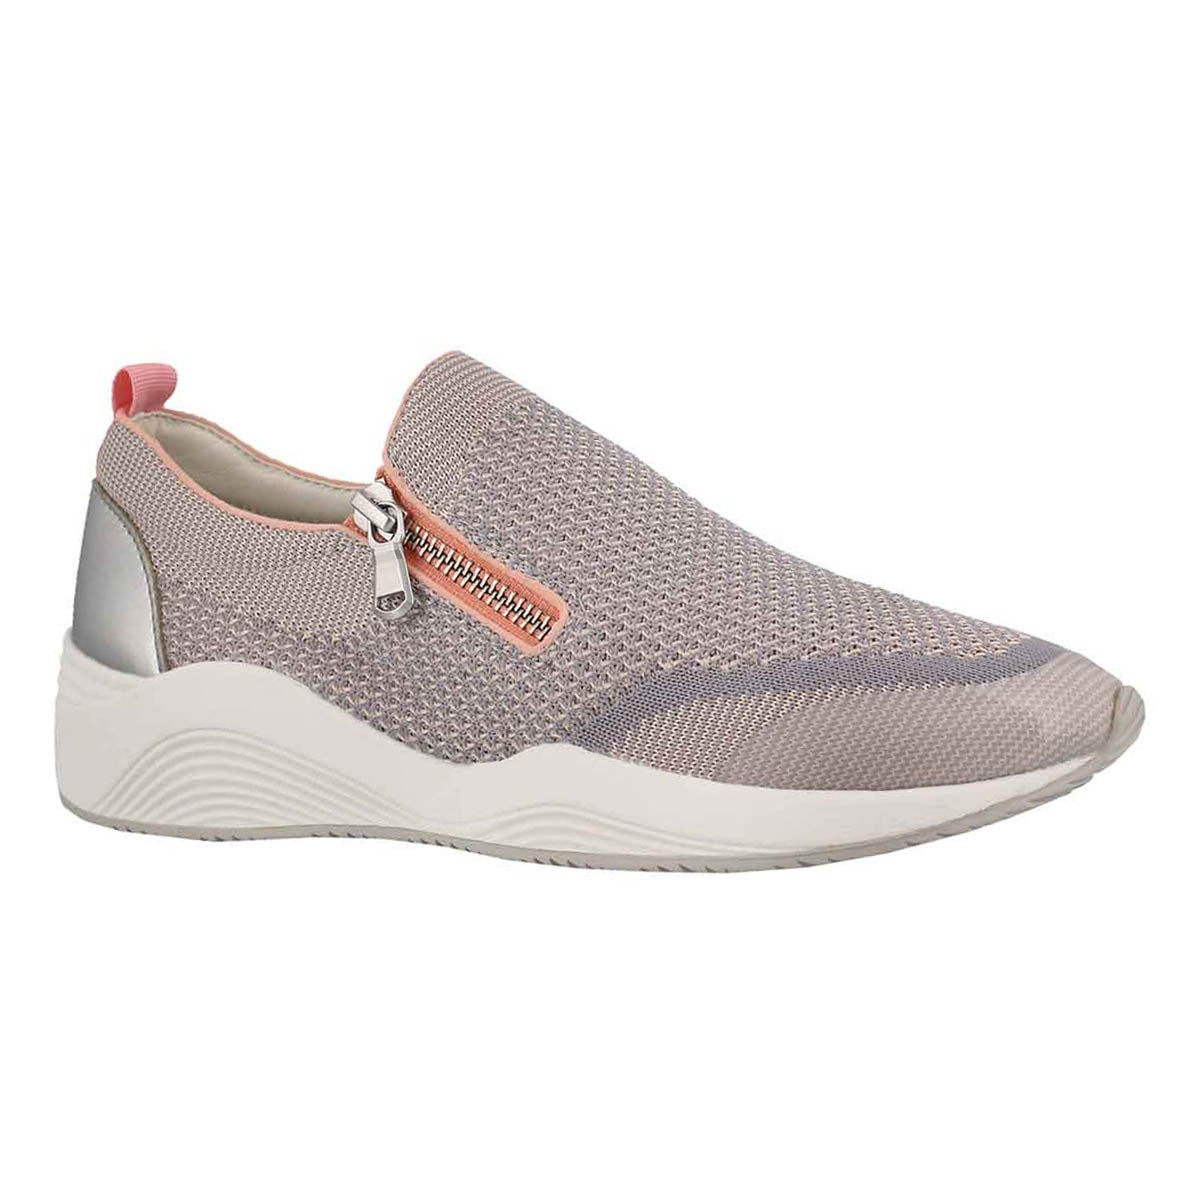 Women's OMAYA skin zip up runners